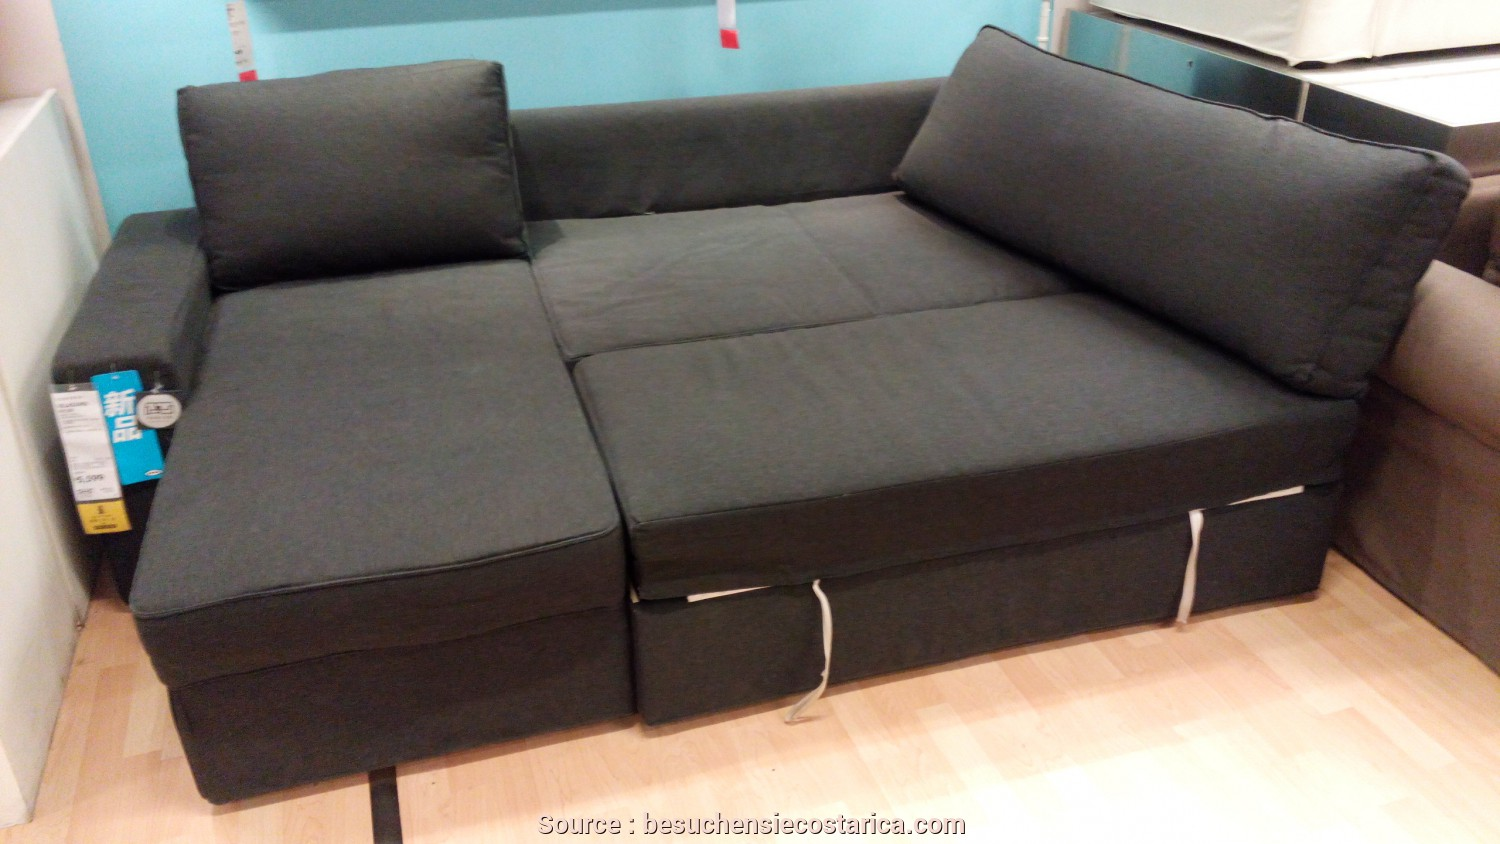 Ikea Vilasund, Bettsofa, Semplice ... Ikea Sofabett Cool Bilder Ikea Vilasund, Backabro Review Return Of, Sofa Bed